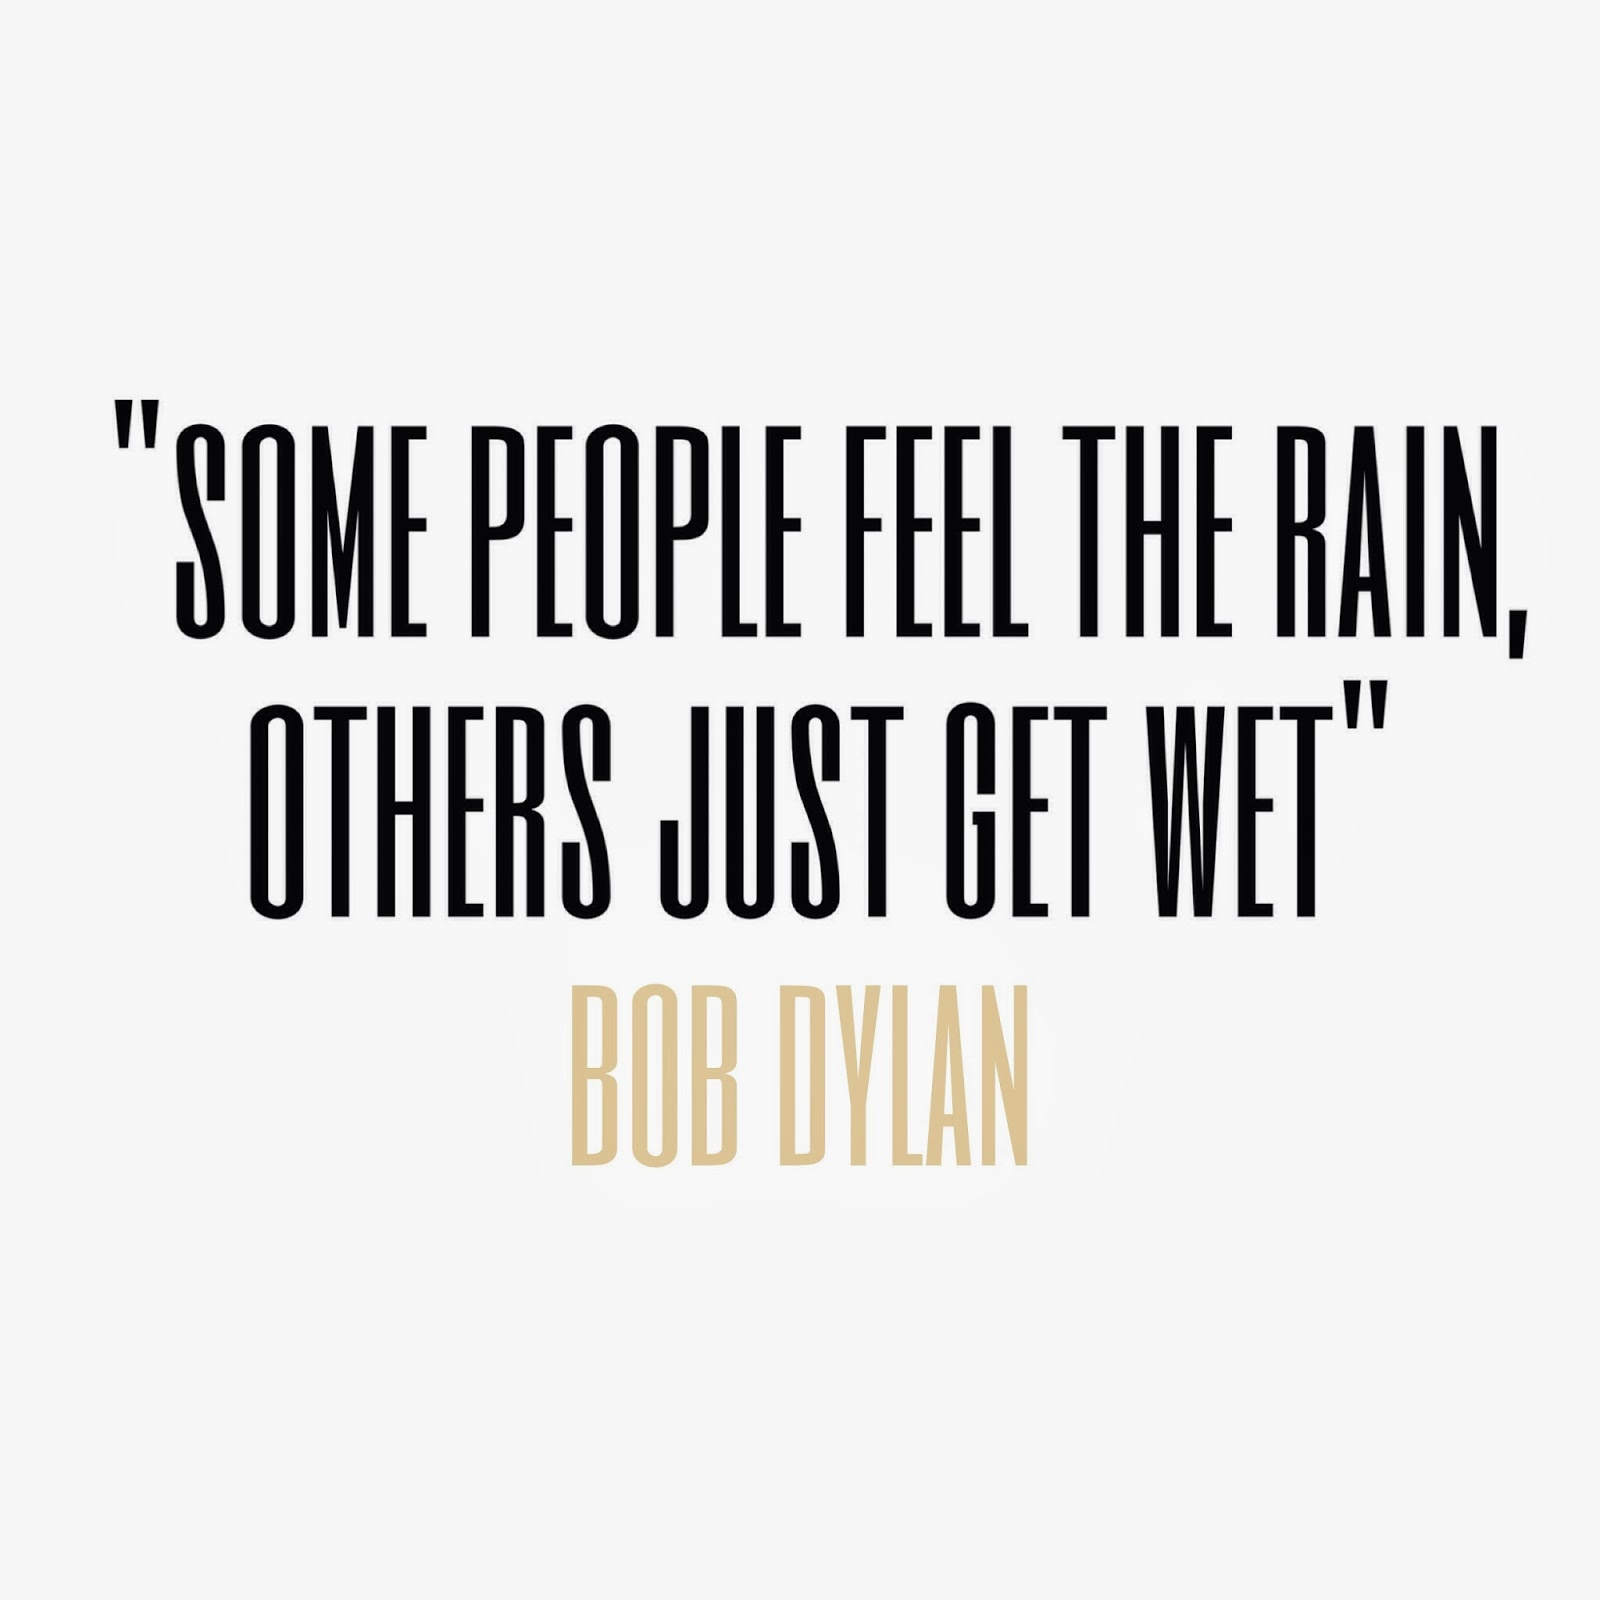 Some People Feel The rain others just get wet bob dylan